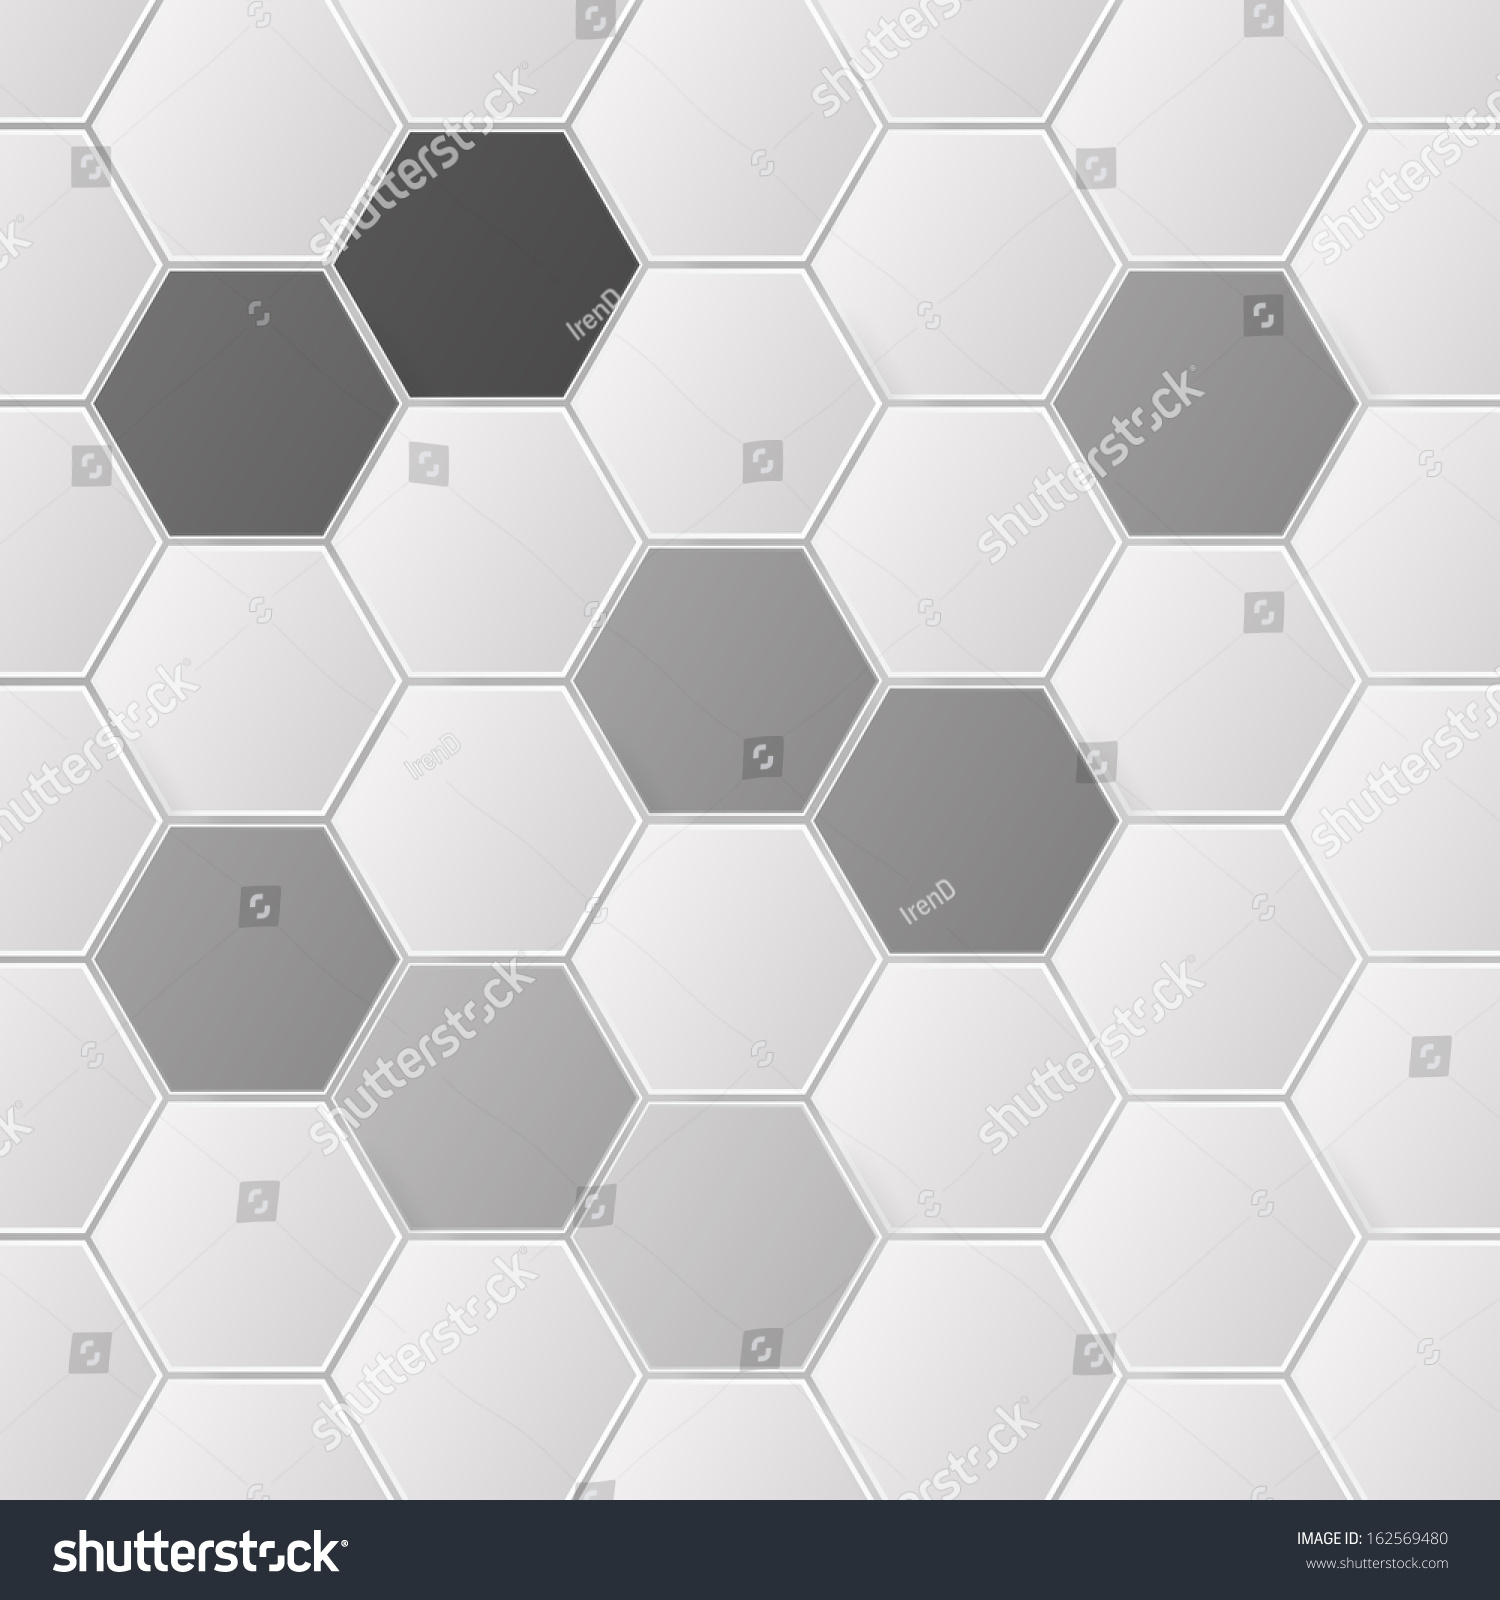 Abstract Grayscale Hexagon Pattern Design Background Stock Vector ...